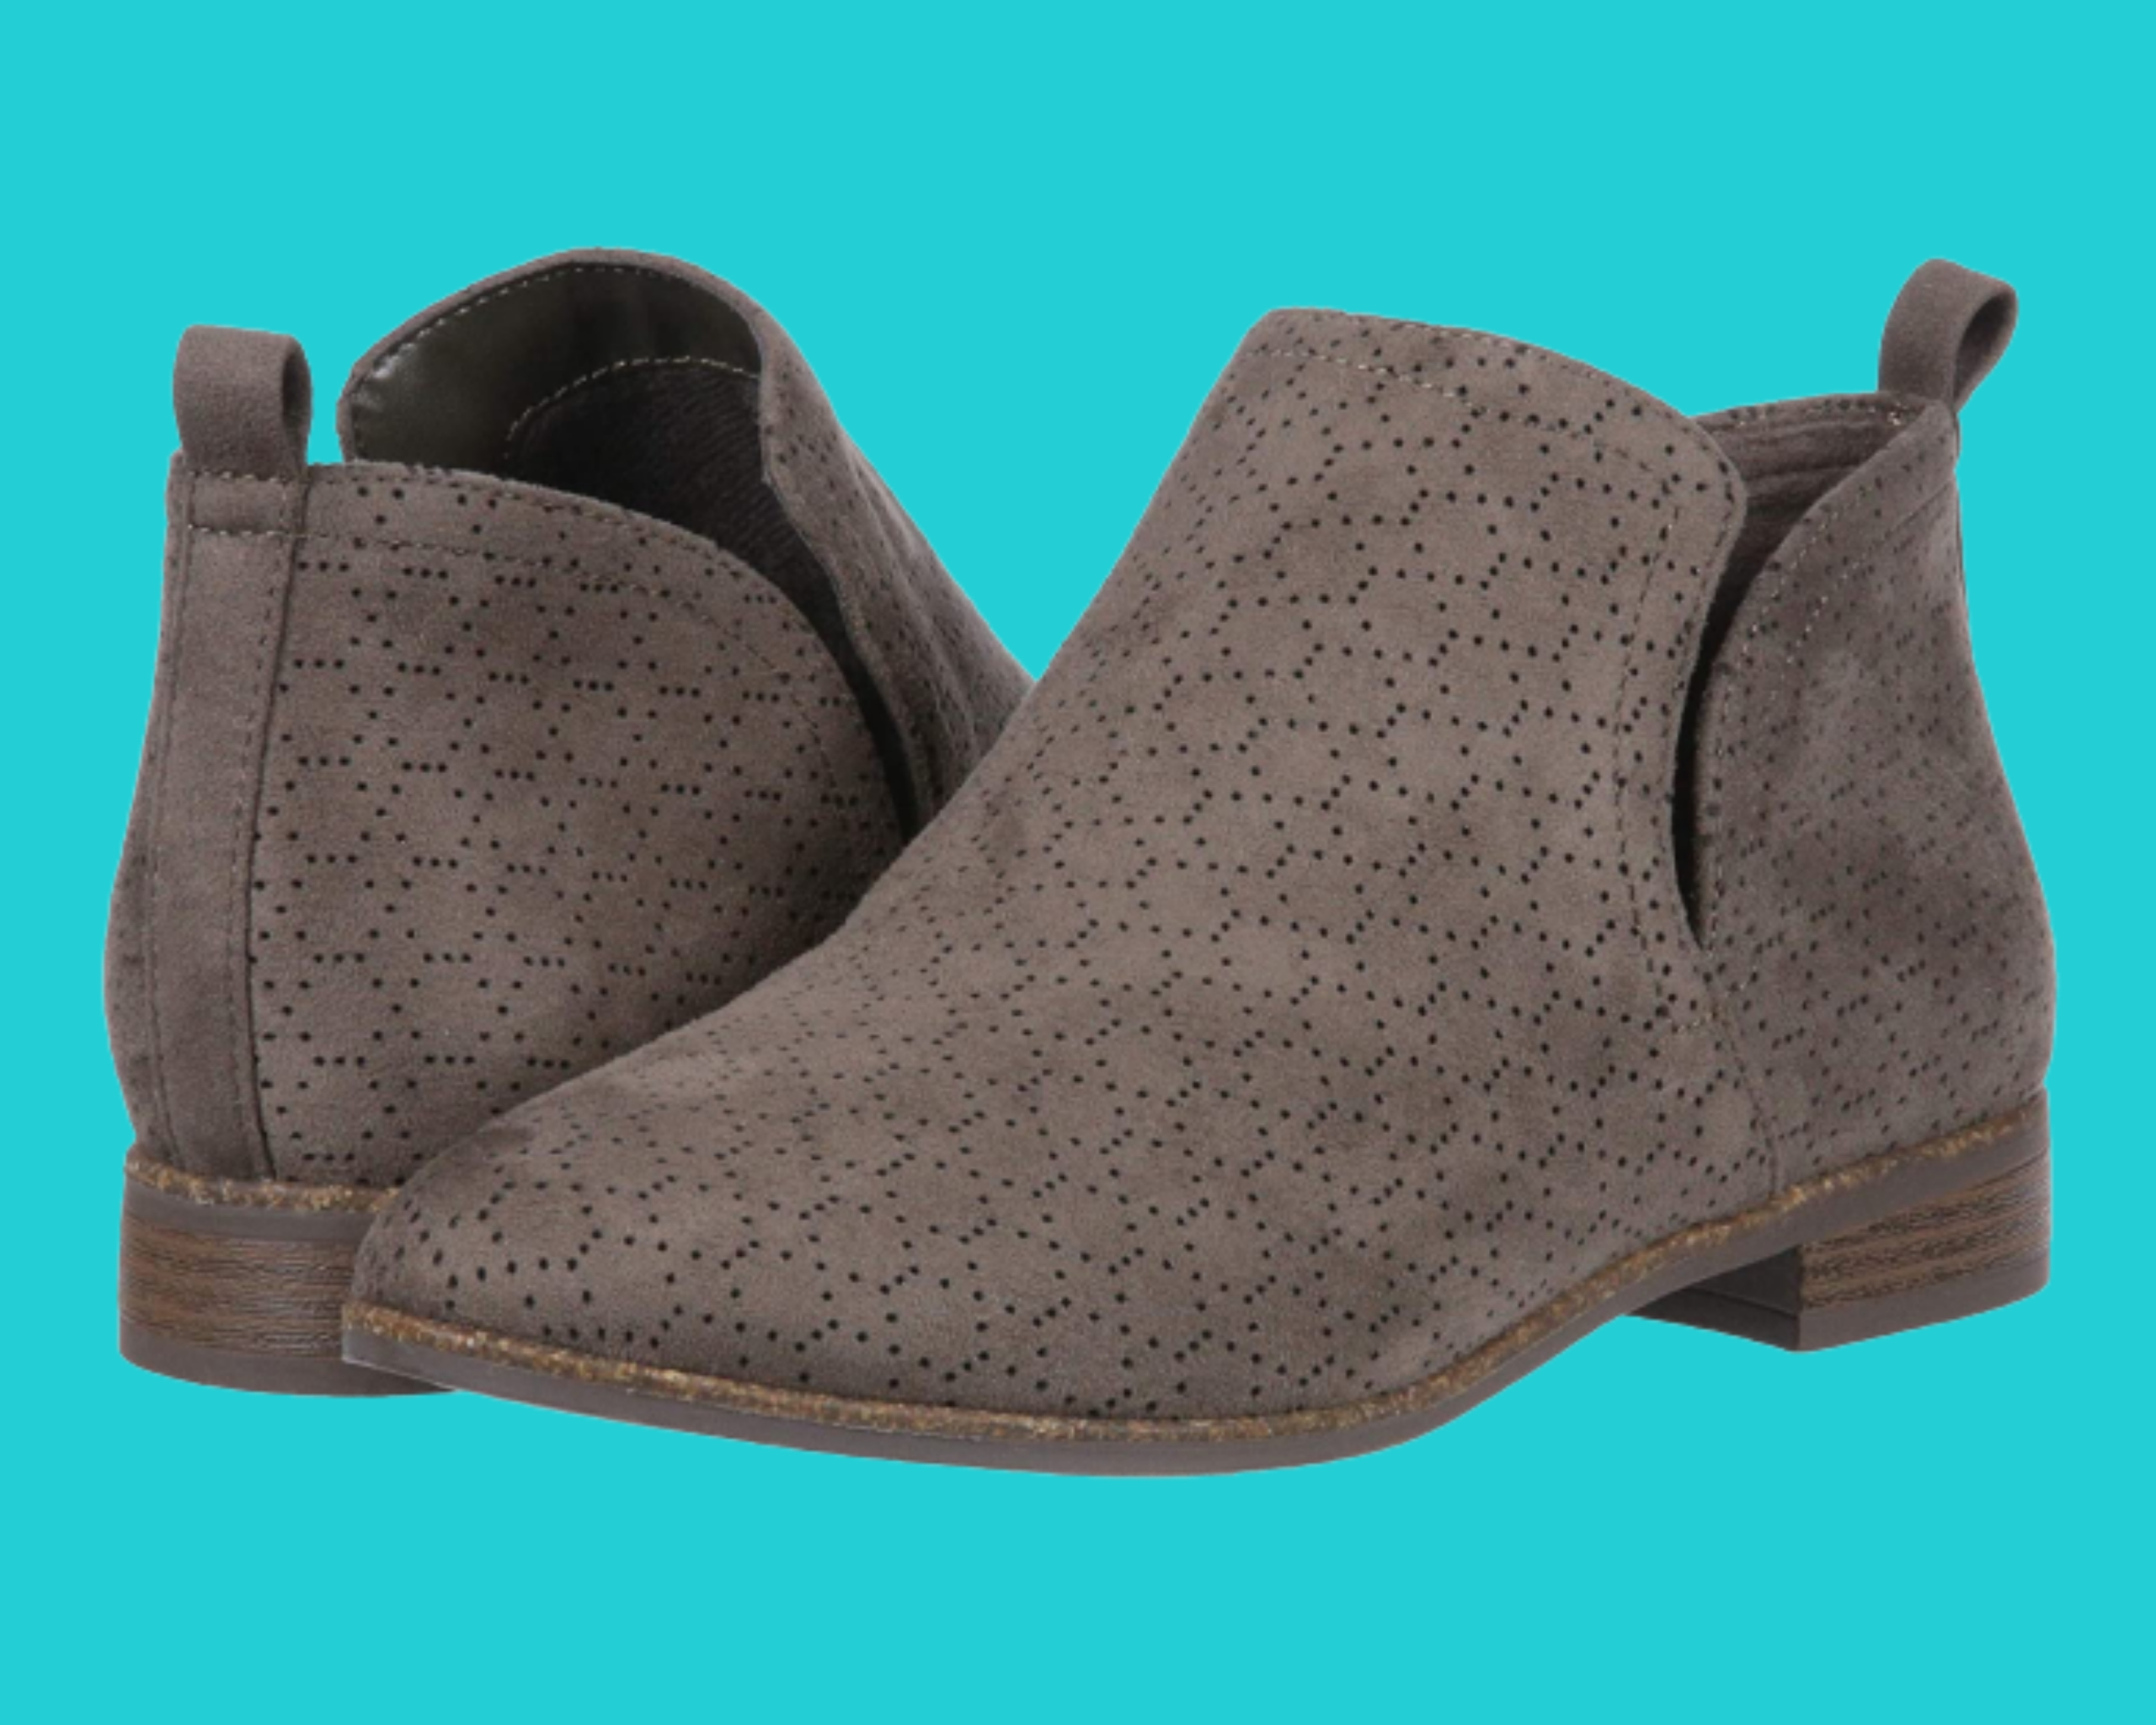 Comfortable Shoes for pregnant women